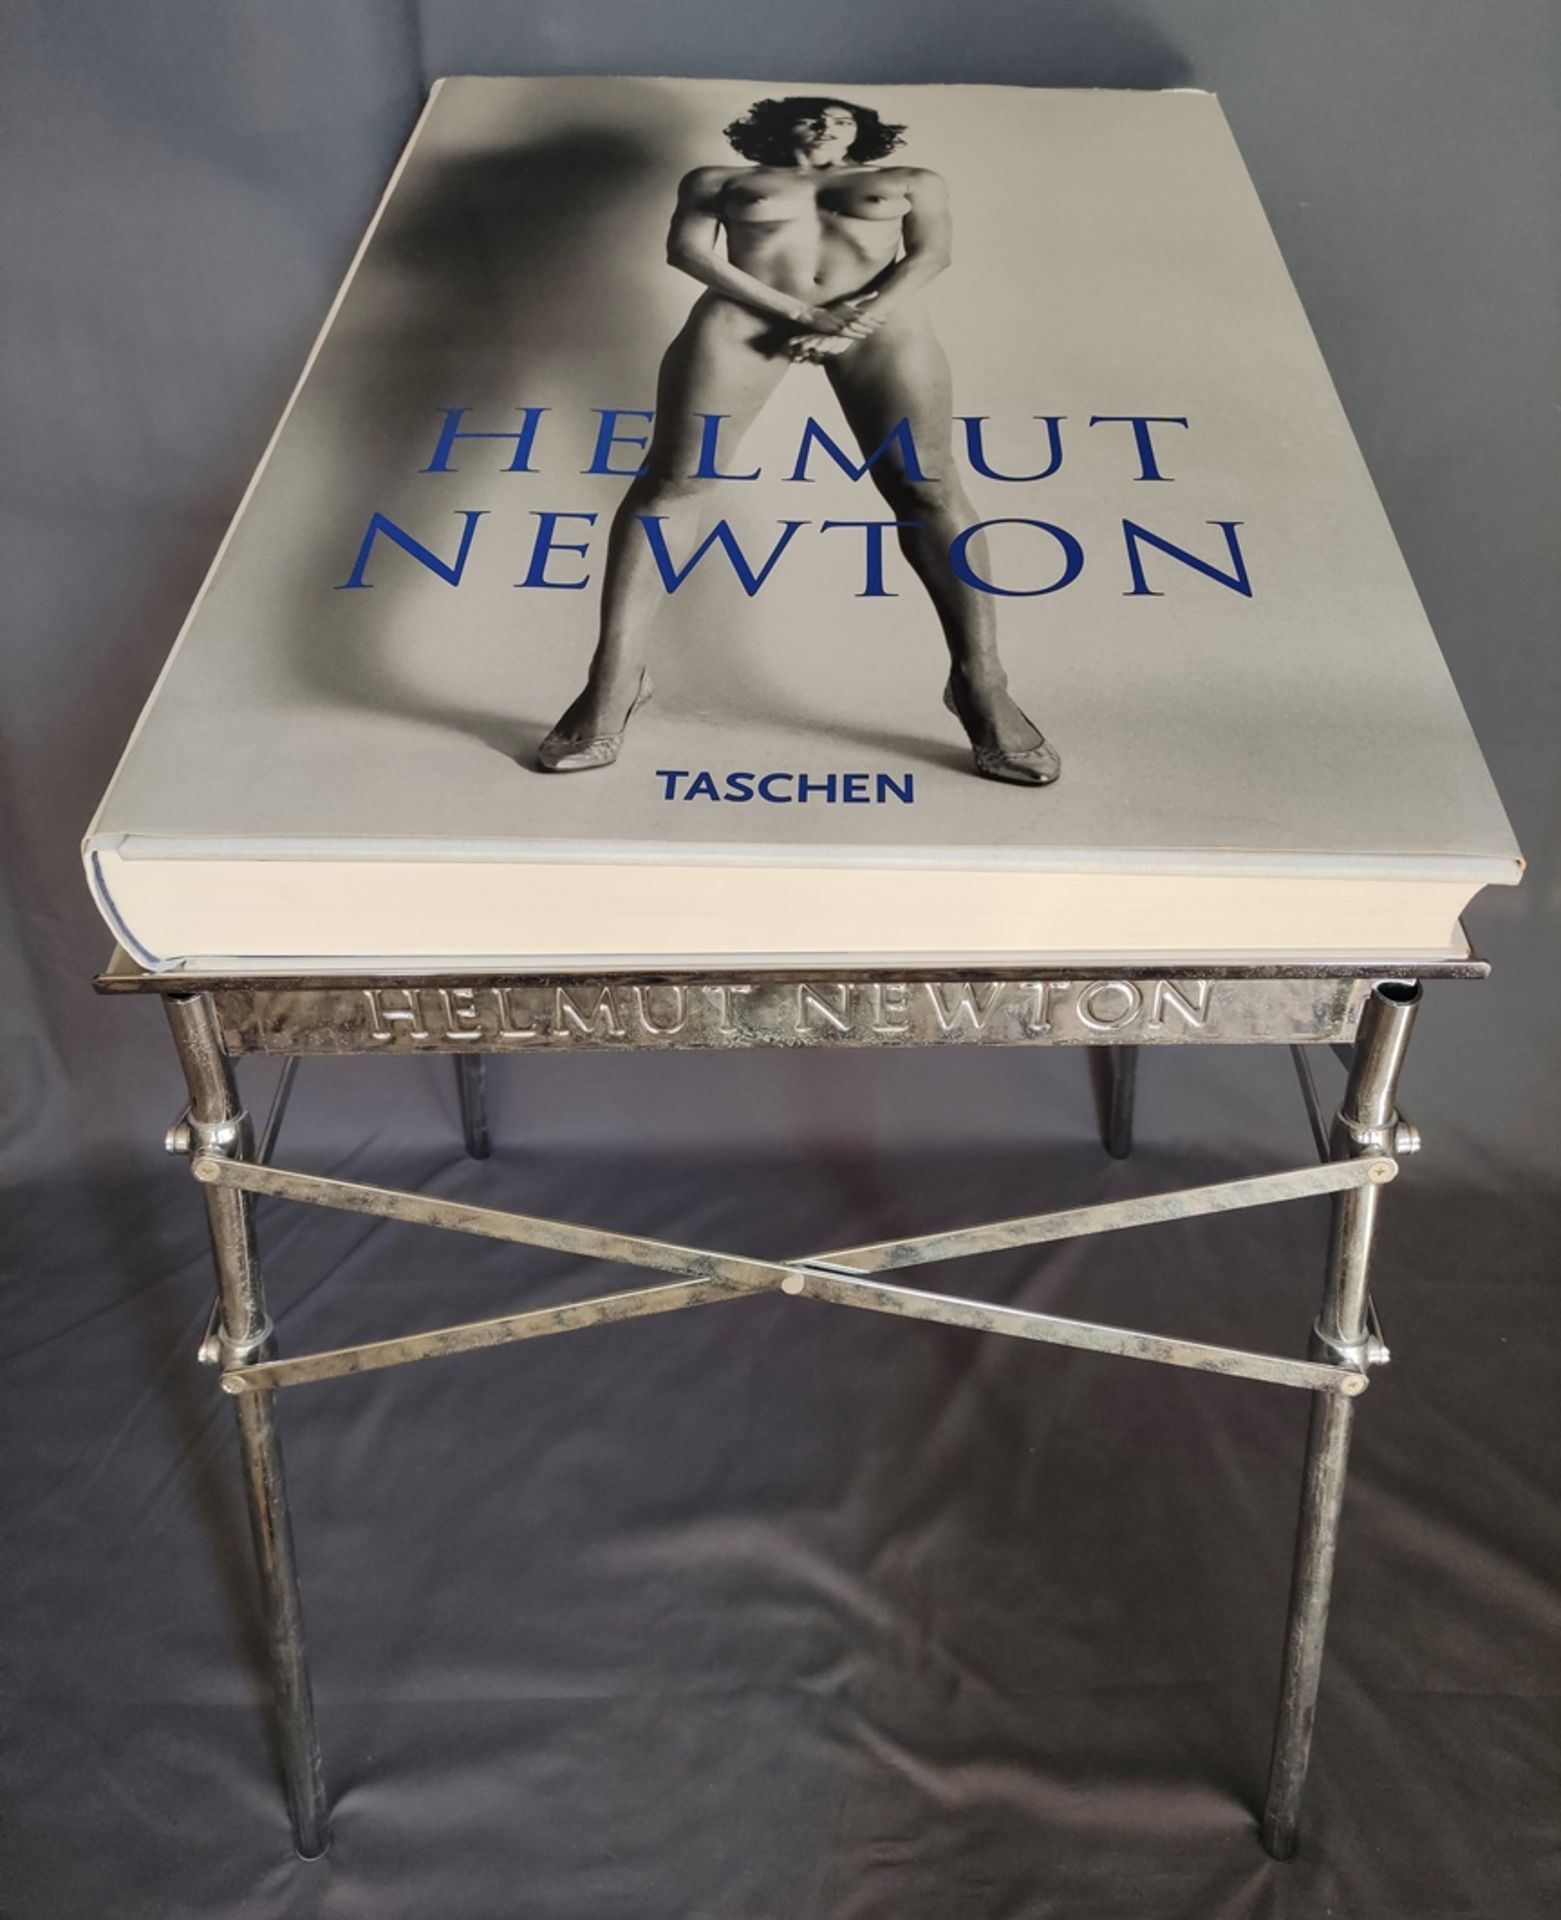 Helmut Newton's SUMO, edition of 10.000 copies, stamped by hand and signed by Helmut Newton, copy 4 - Image 2 of 8